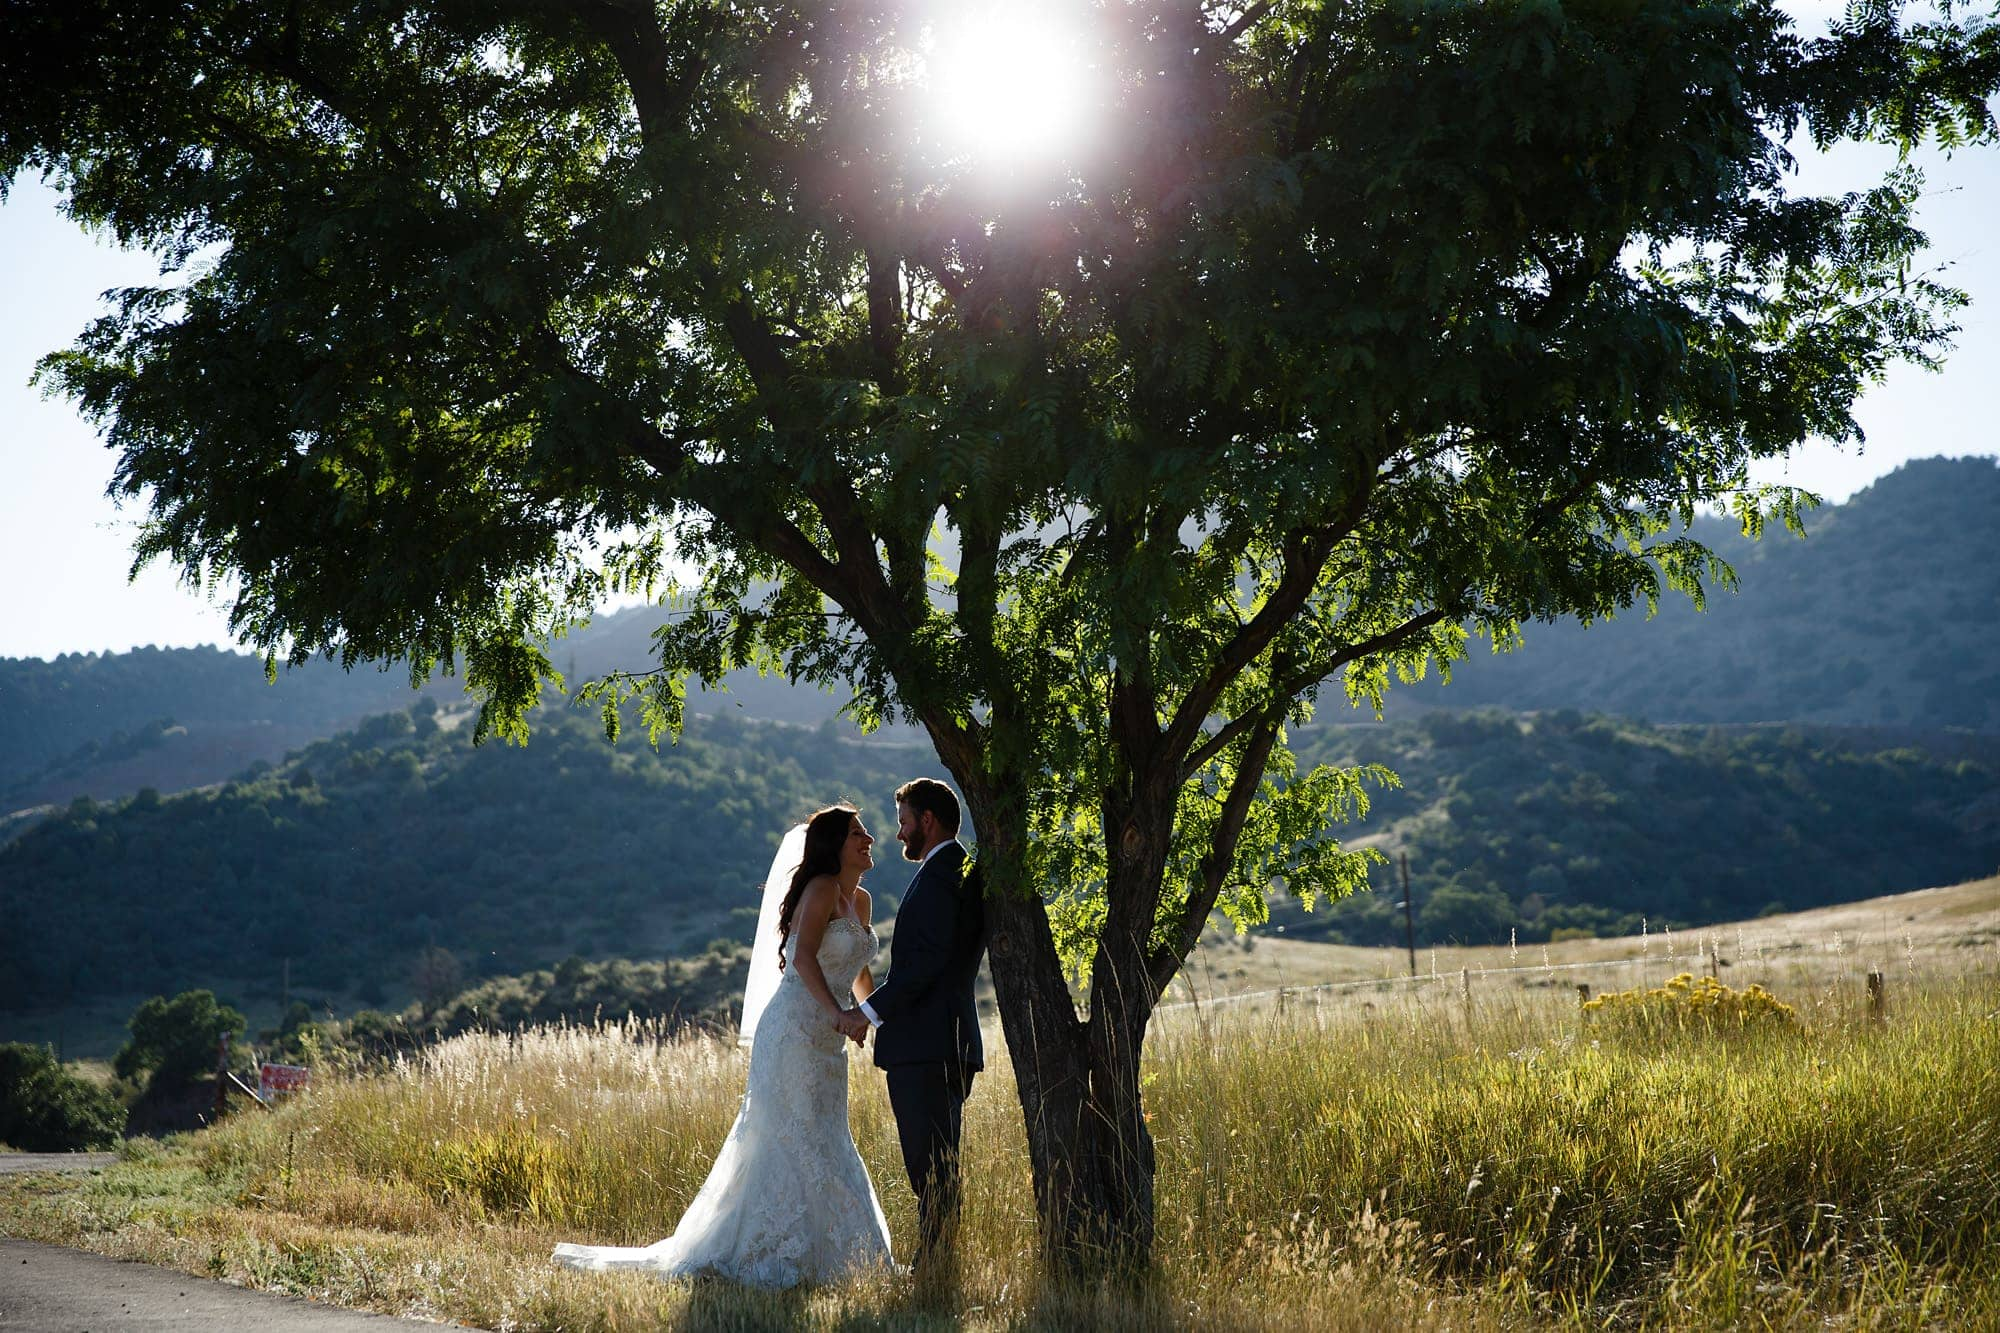 Blake and Gina share a moment together after their wedding under a tree in Morrison, Colorado